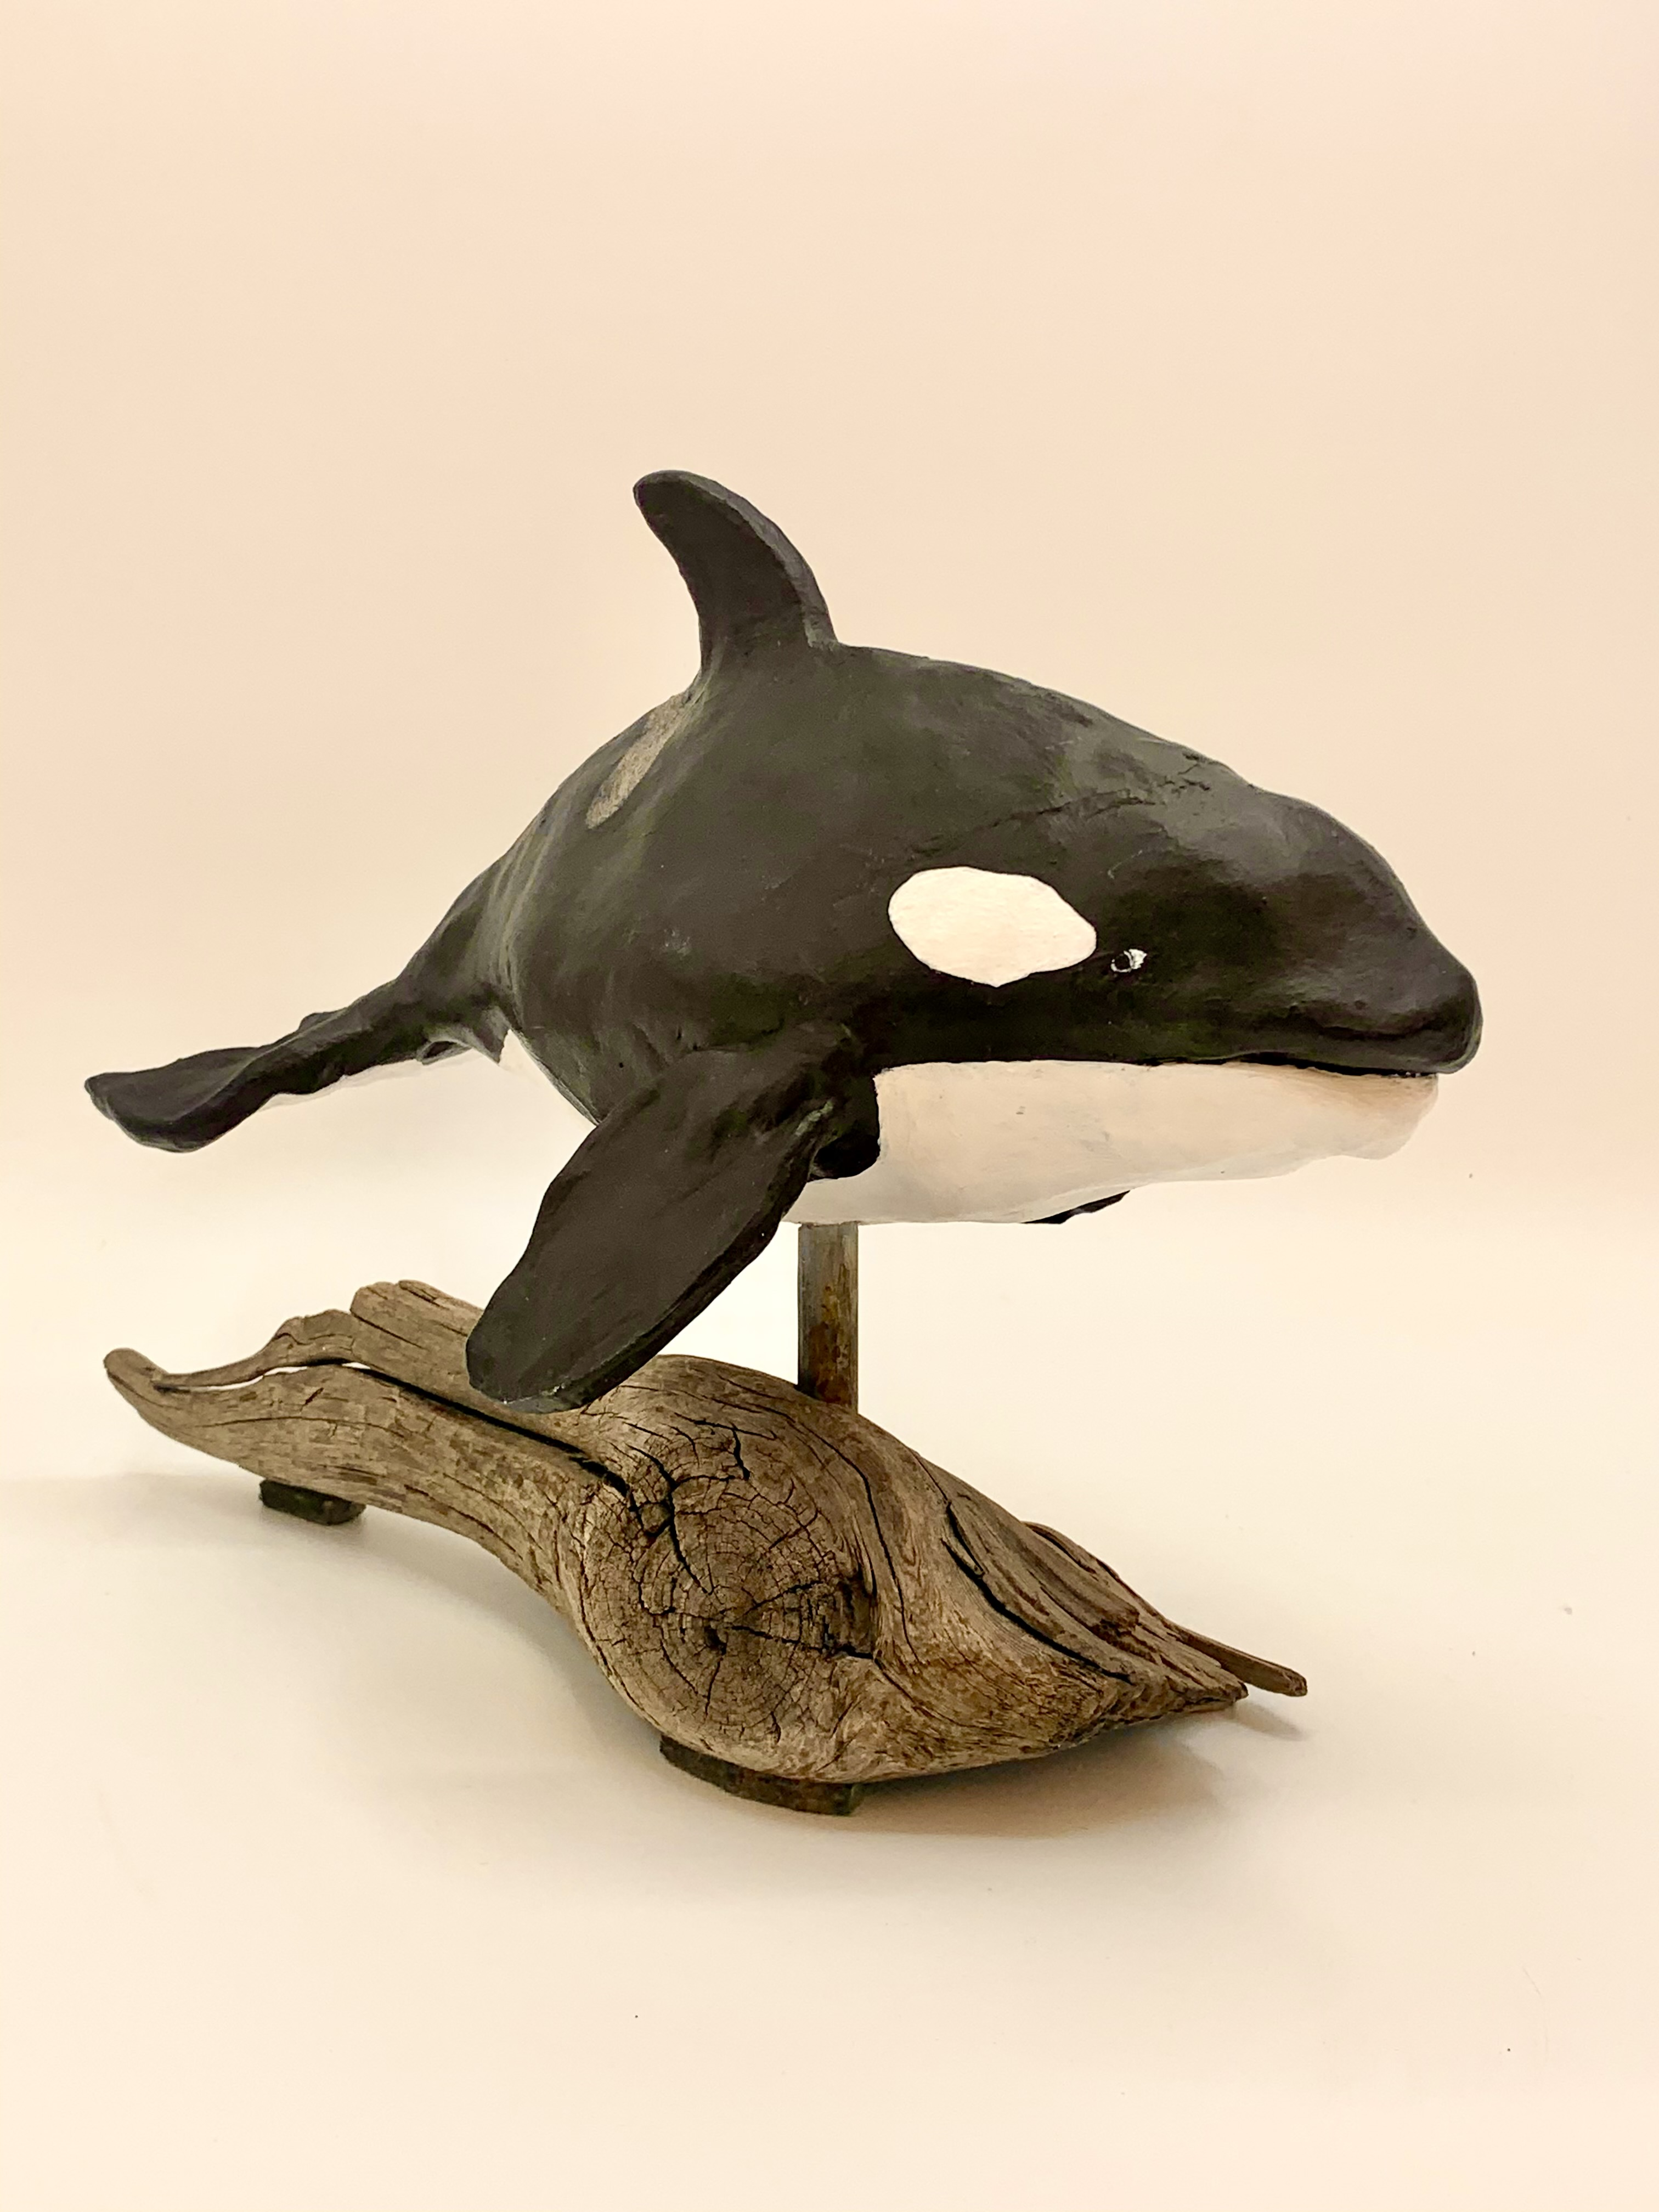 Orca-pic-2